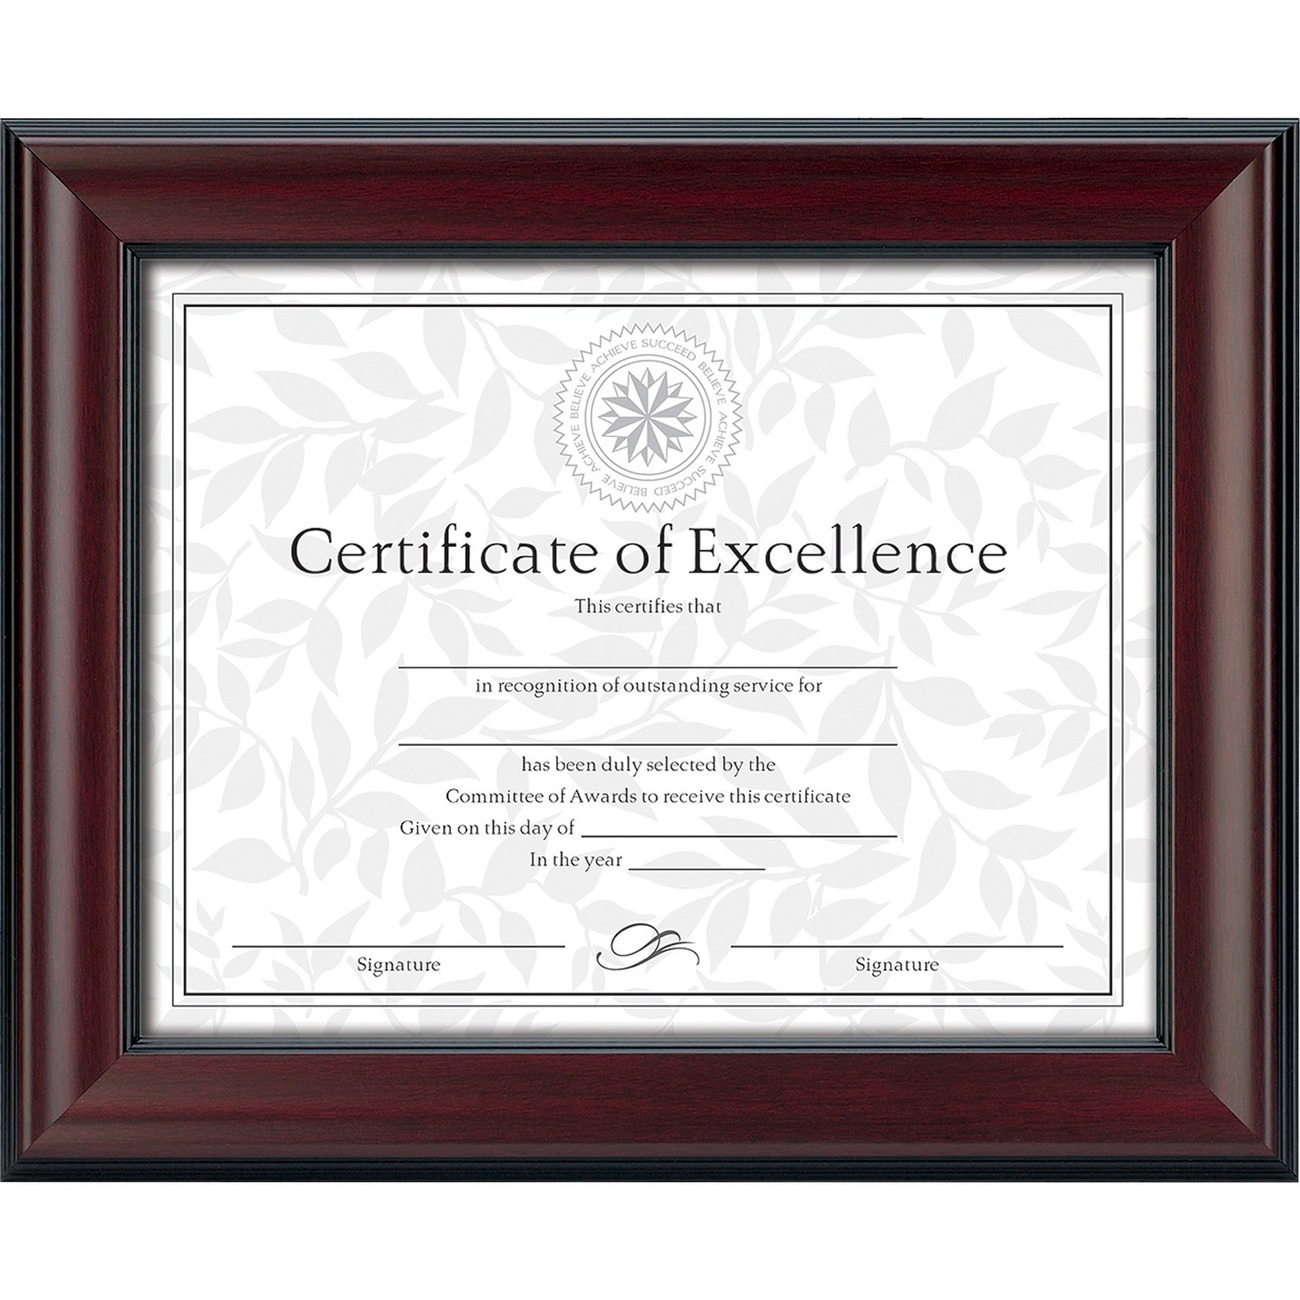 burnes document frame madill the office company